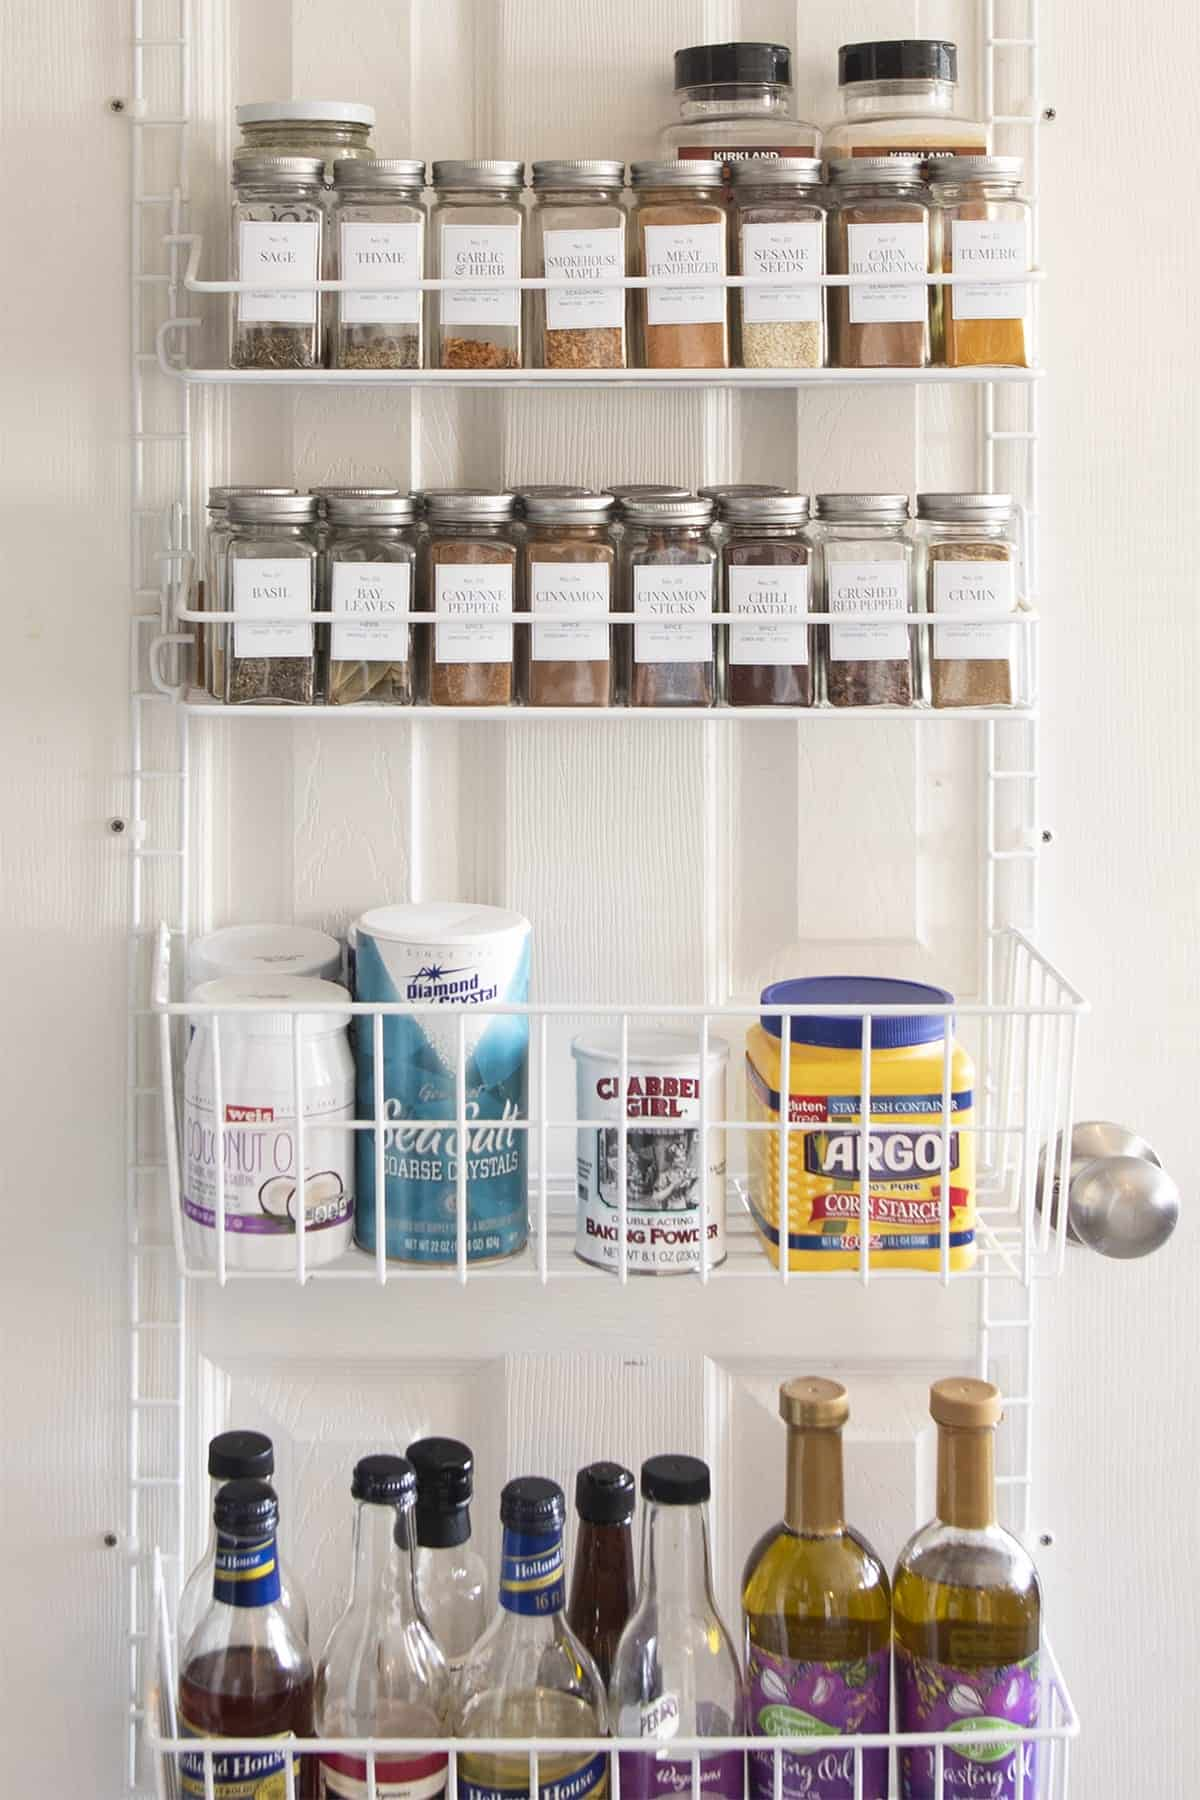 Over-the-door wire rack keeps spices, cooking oils and baking items organized and handy.